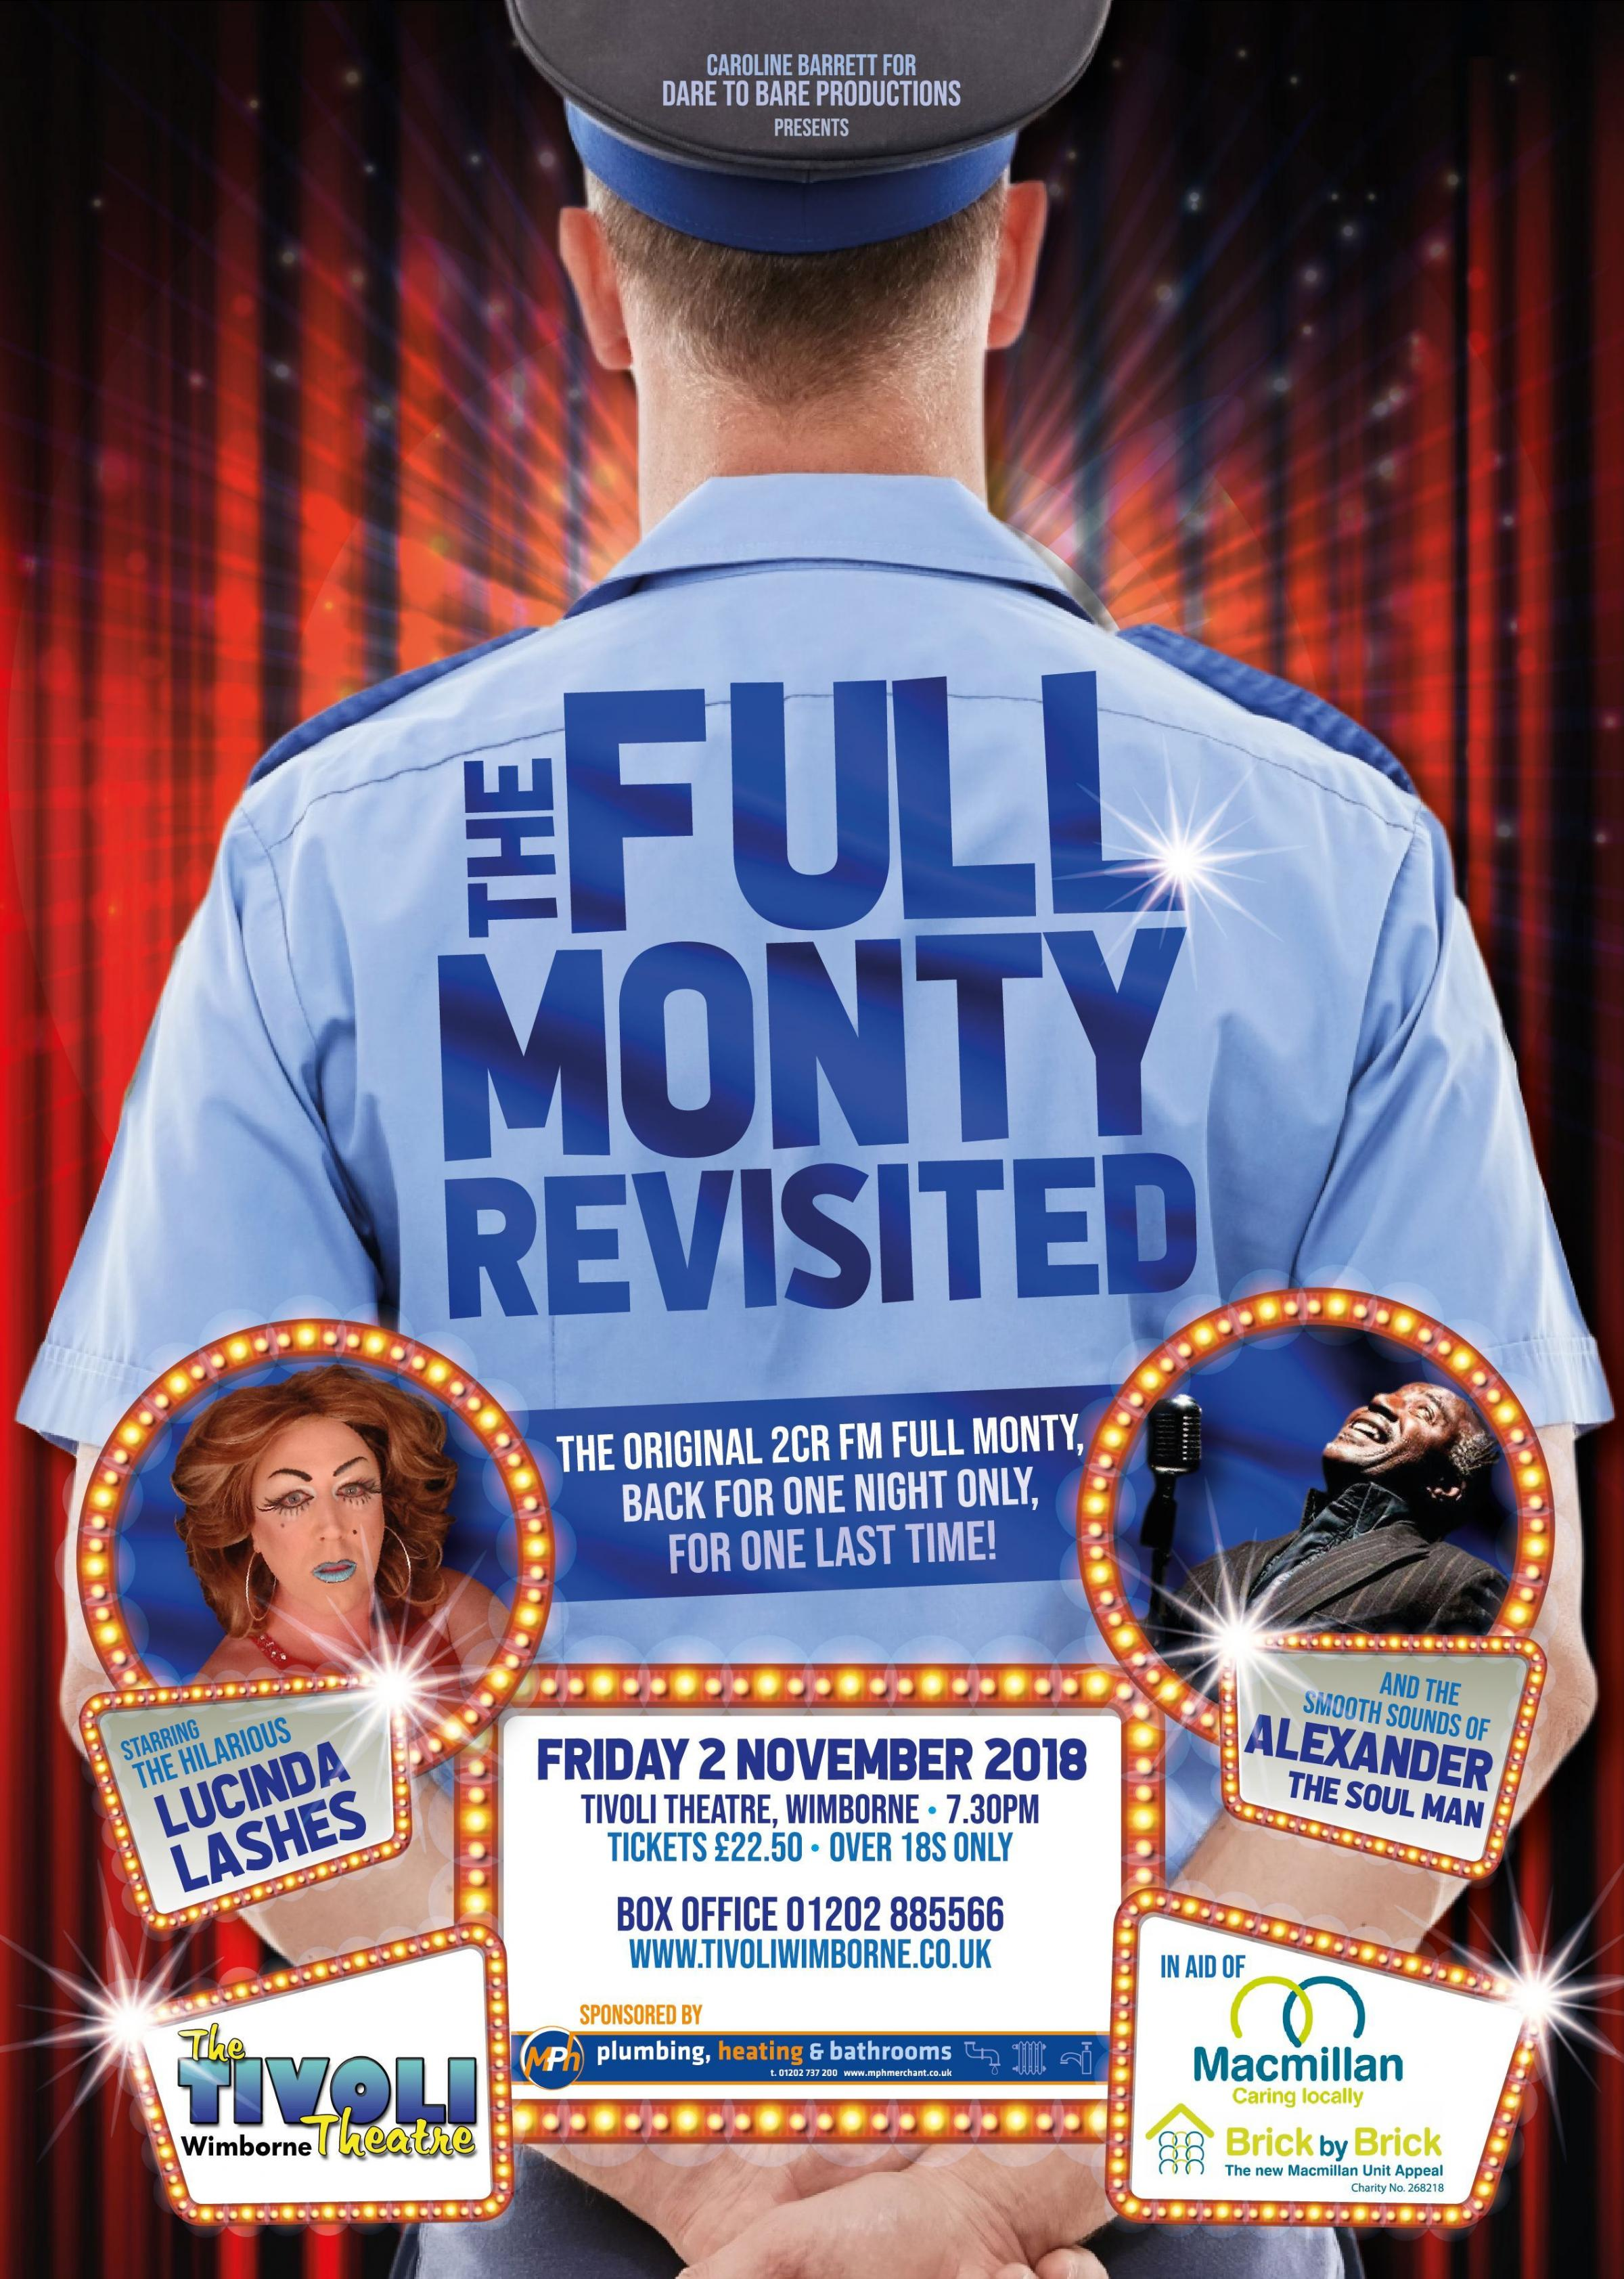 The Full Monty Revisited